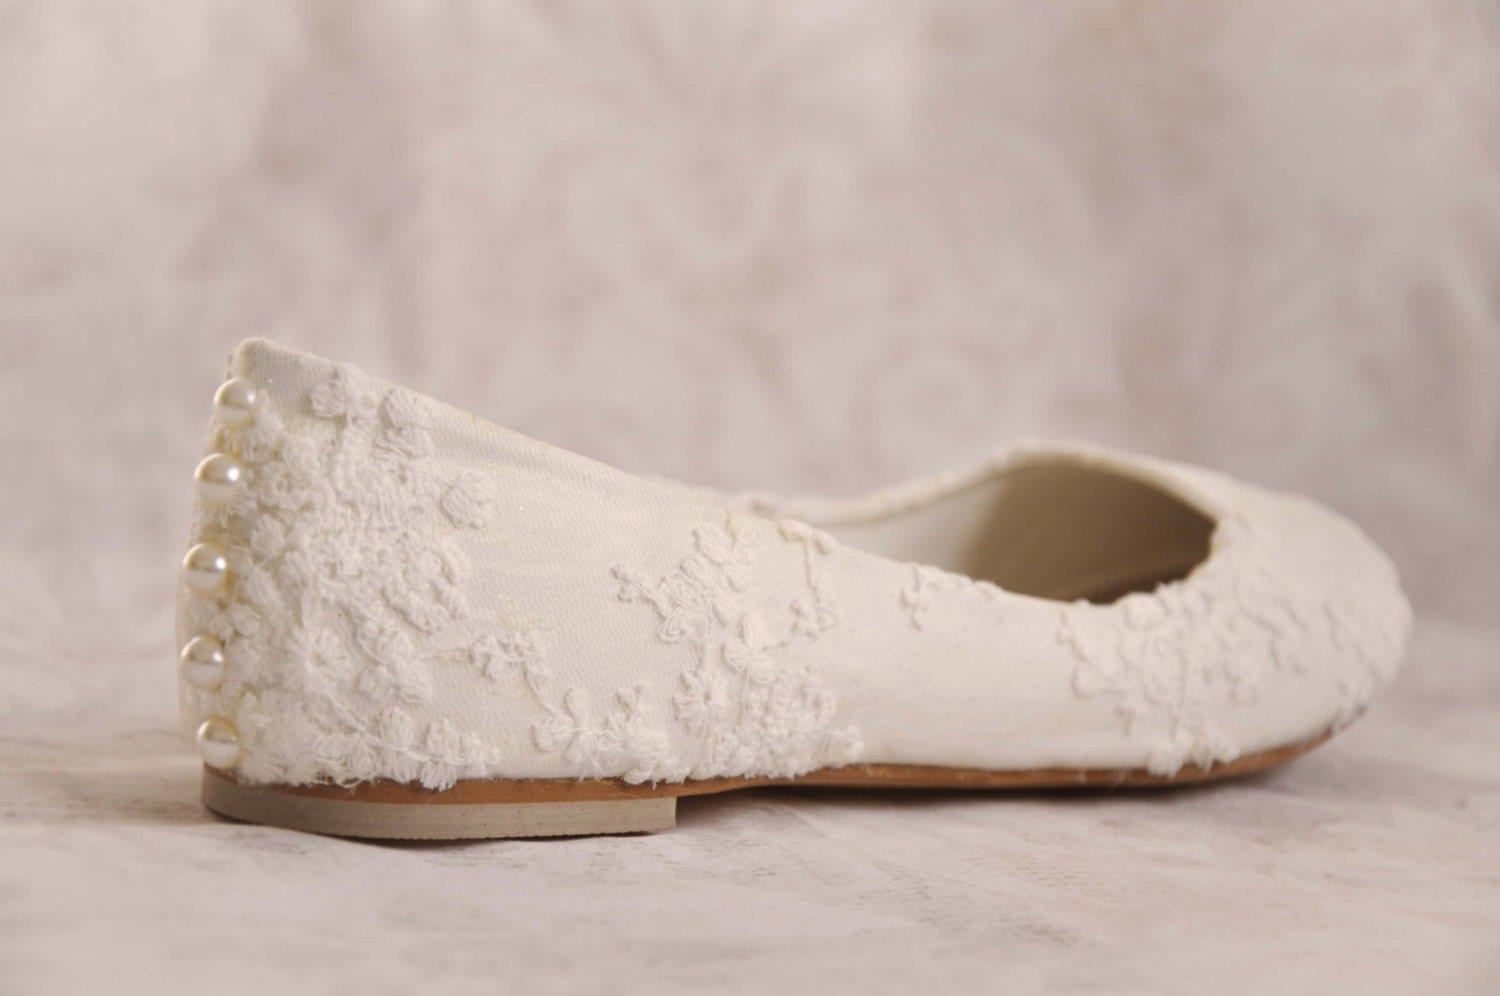 flat lace bridal shoes - photo #13